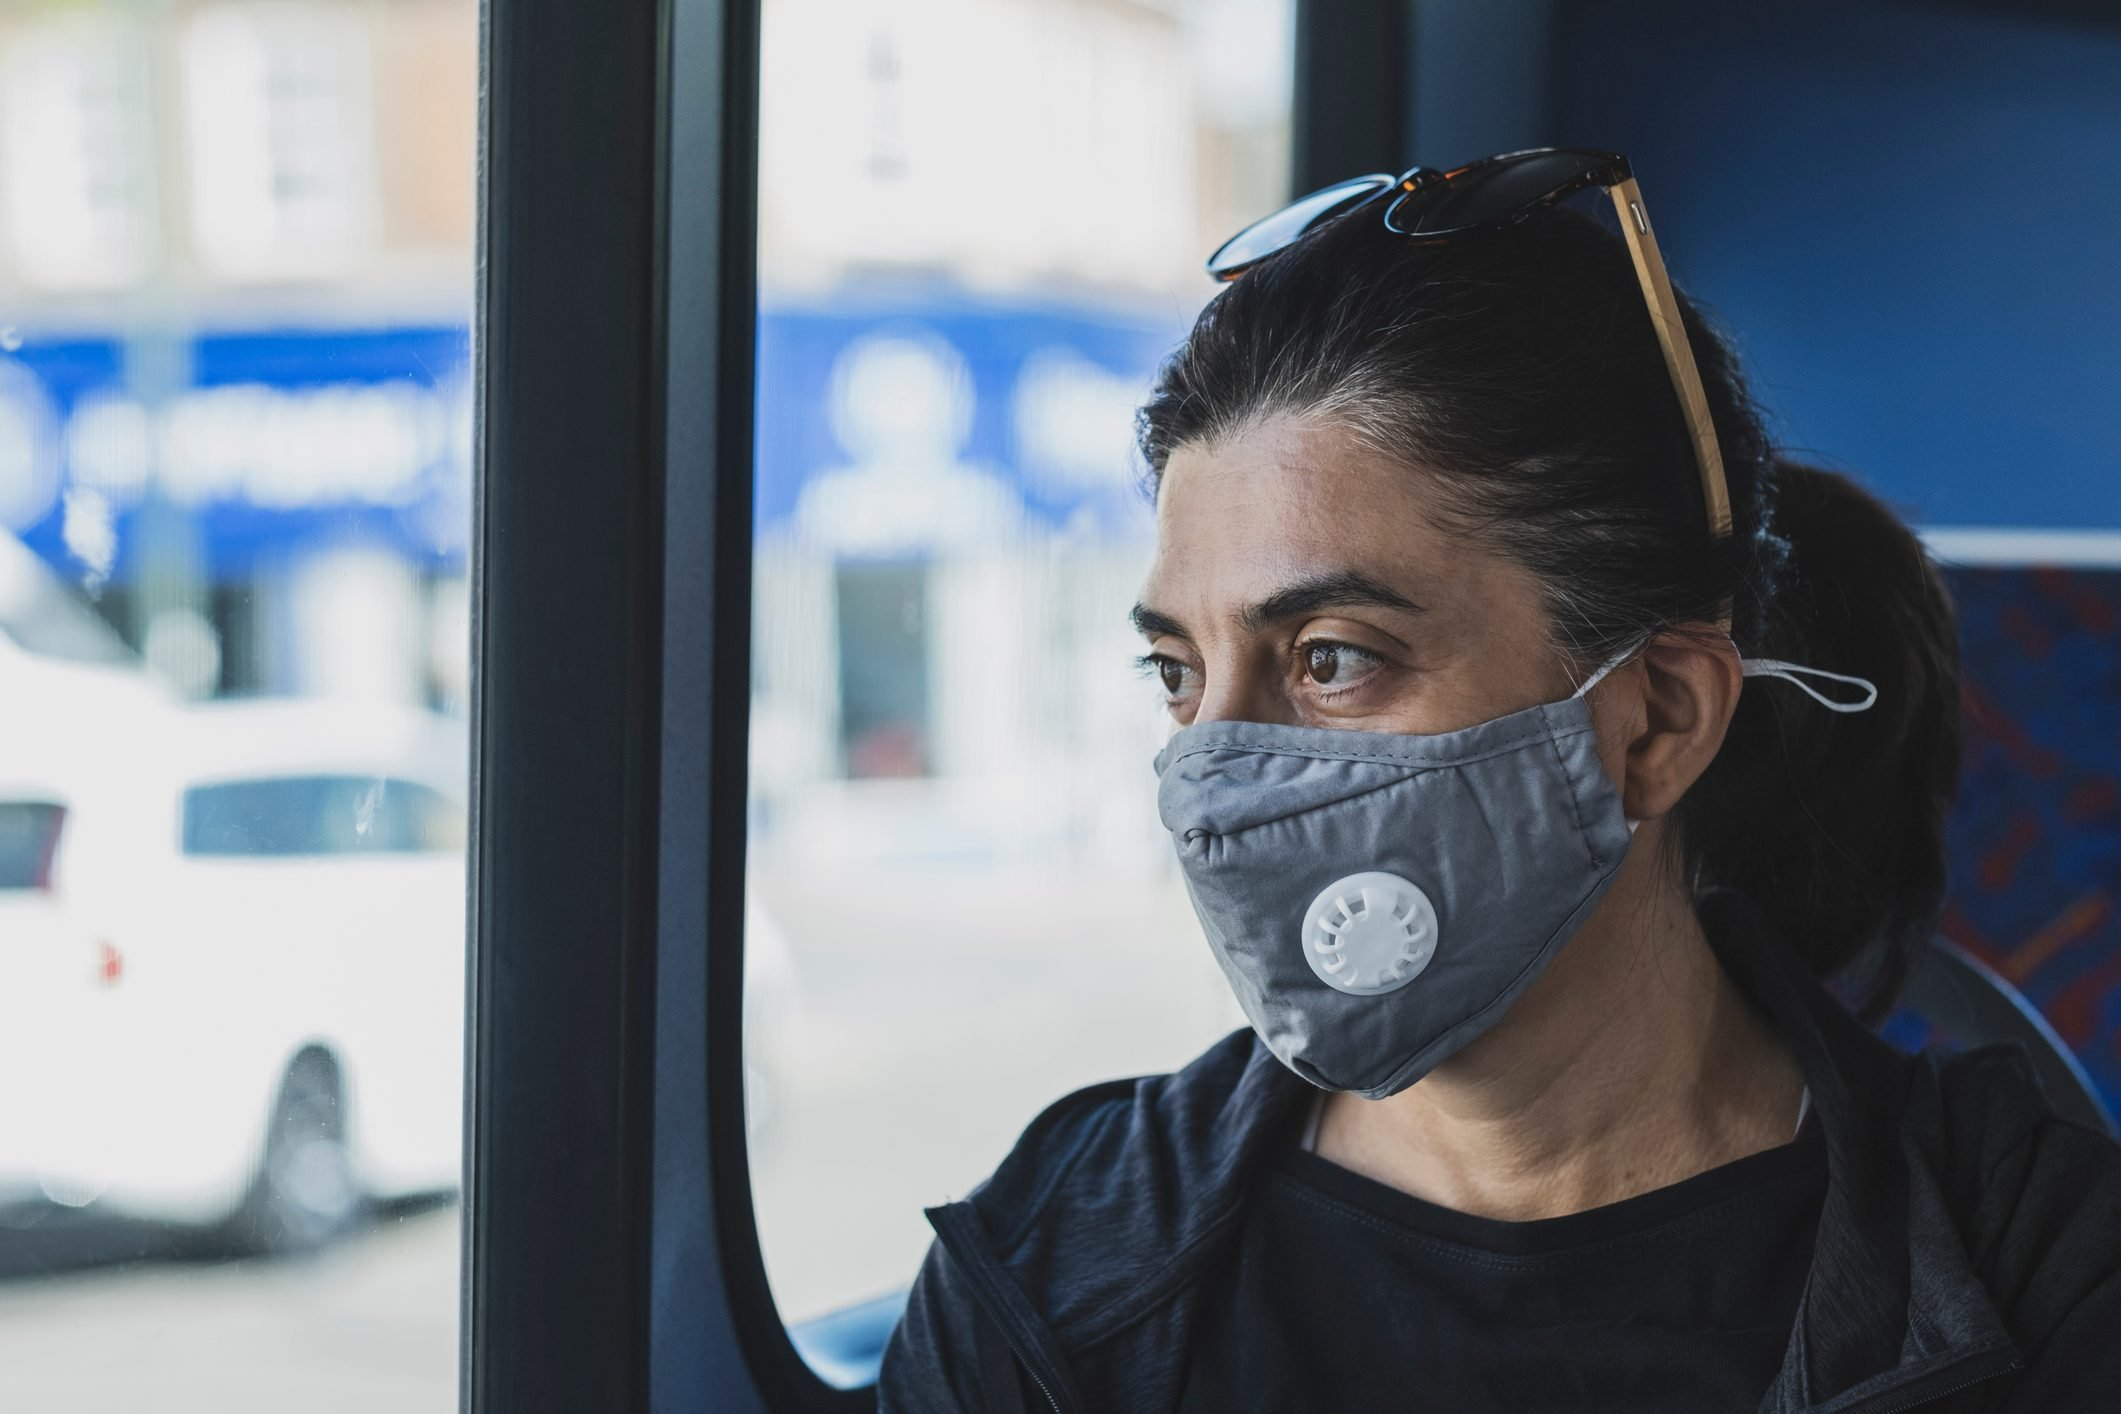 A woman on a bus using a protective mask